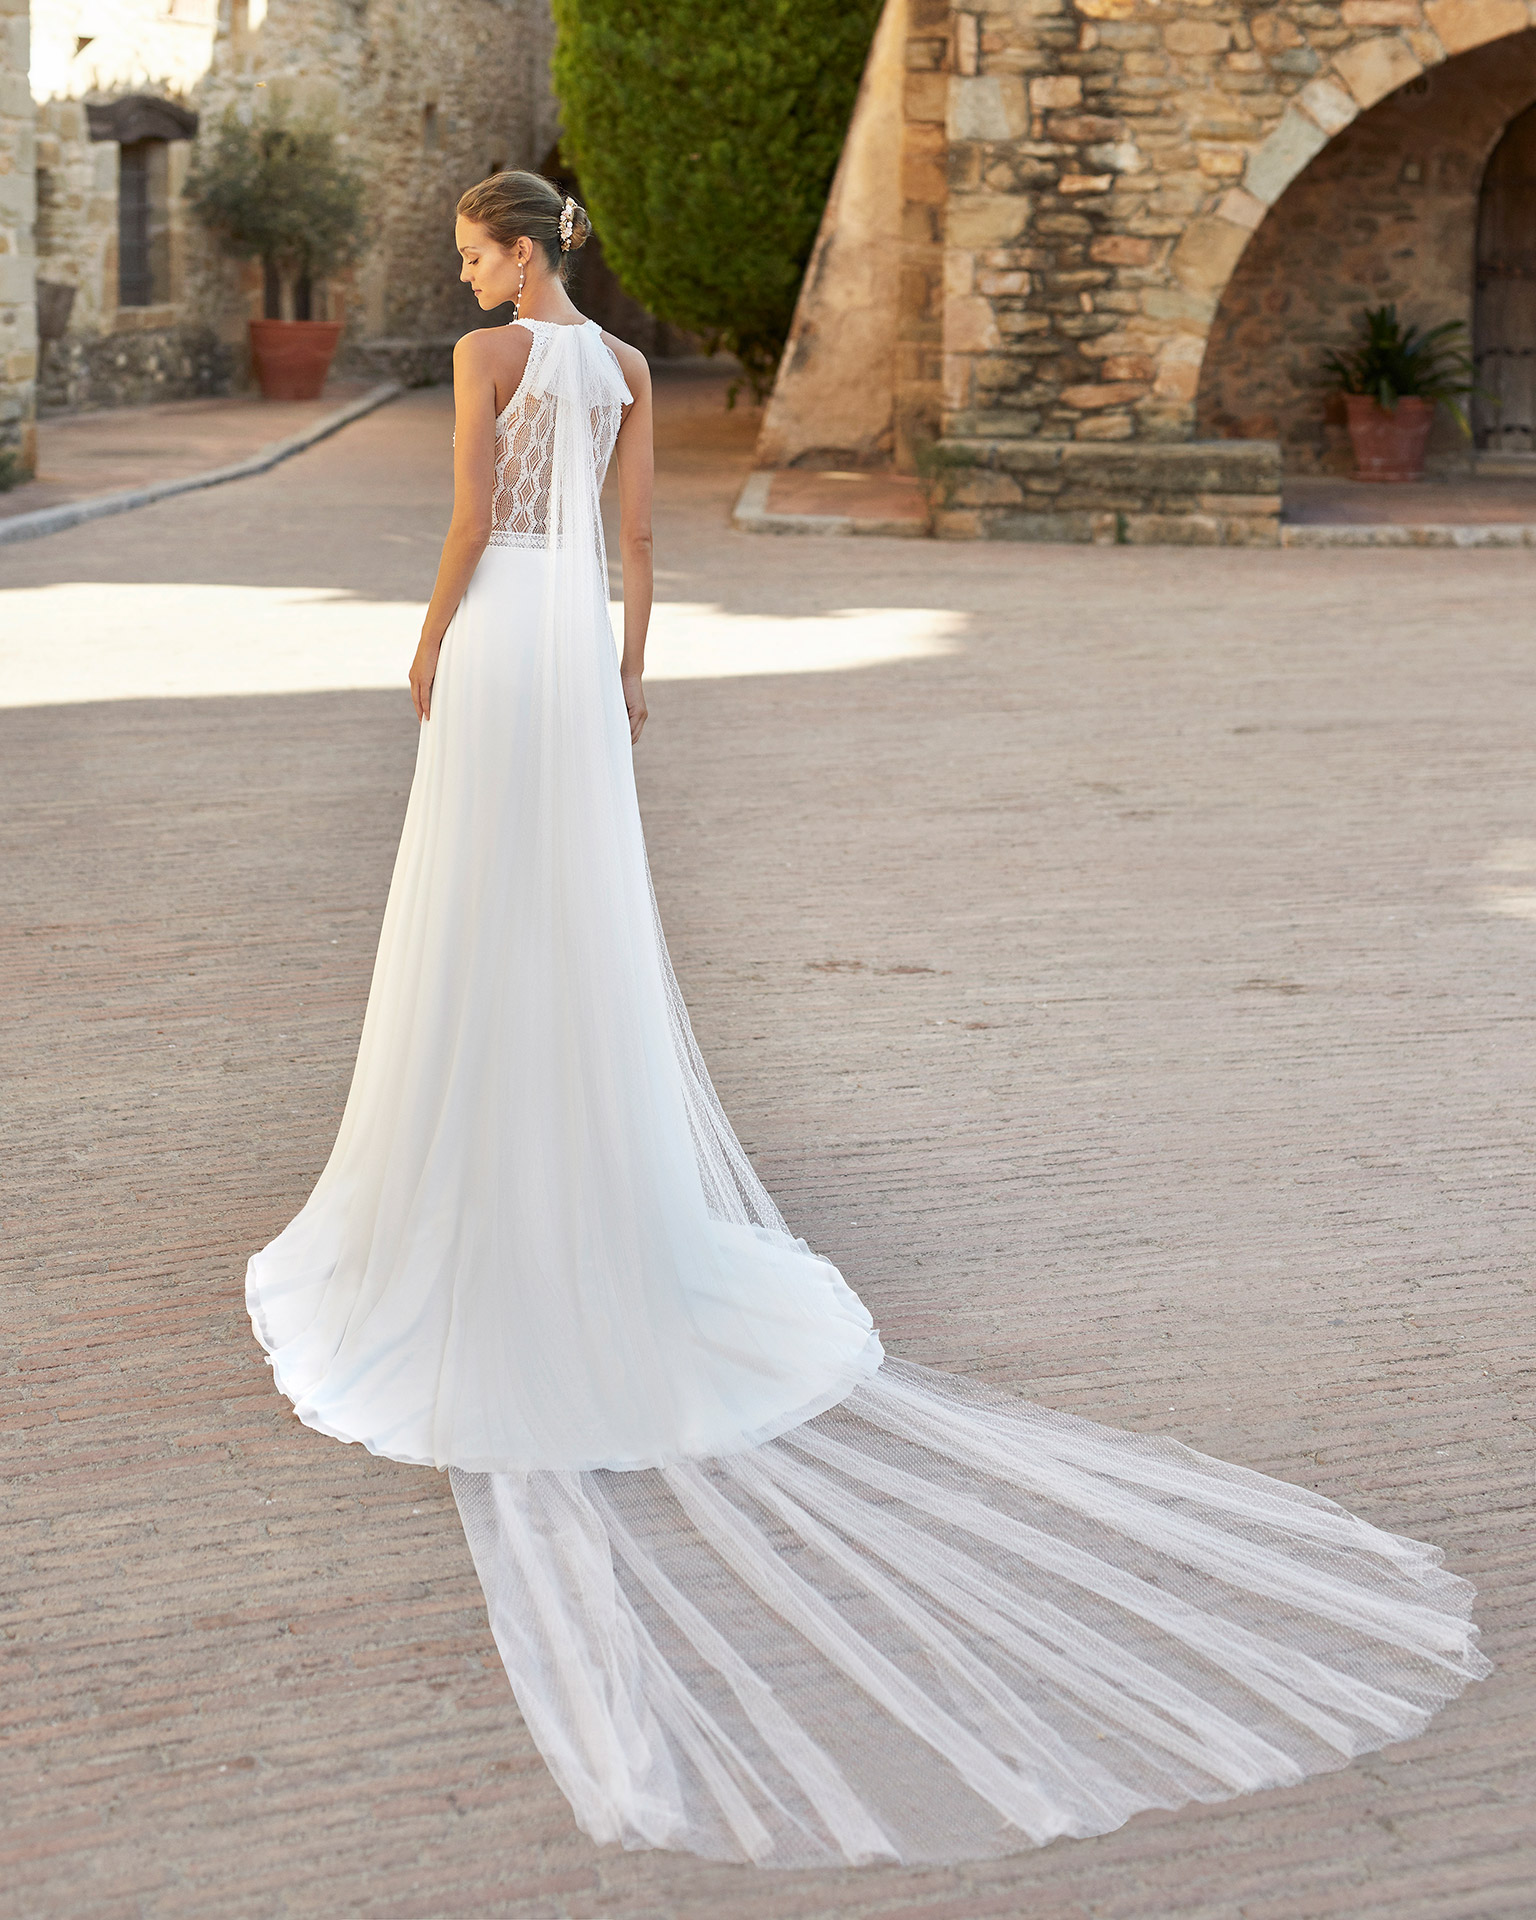 Boho-chic sheath-style wedding dress with a beadwork lace bodice and side slit in skirt; with a halter neck and long draped tulle from the neck. Alma Novia model in georgette. 2022 ALMANOVIA Collection.